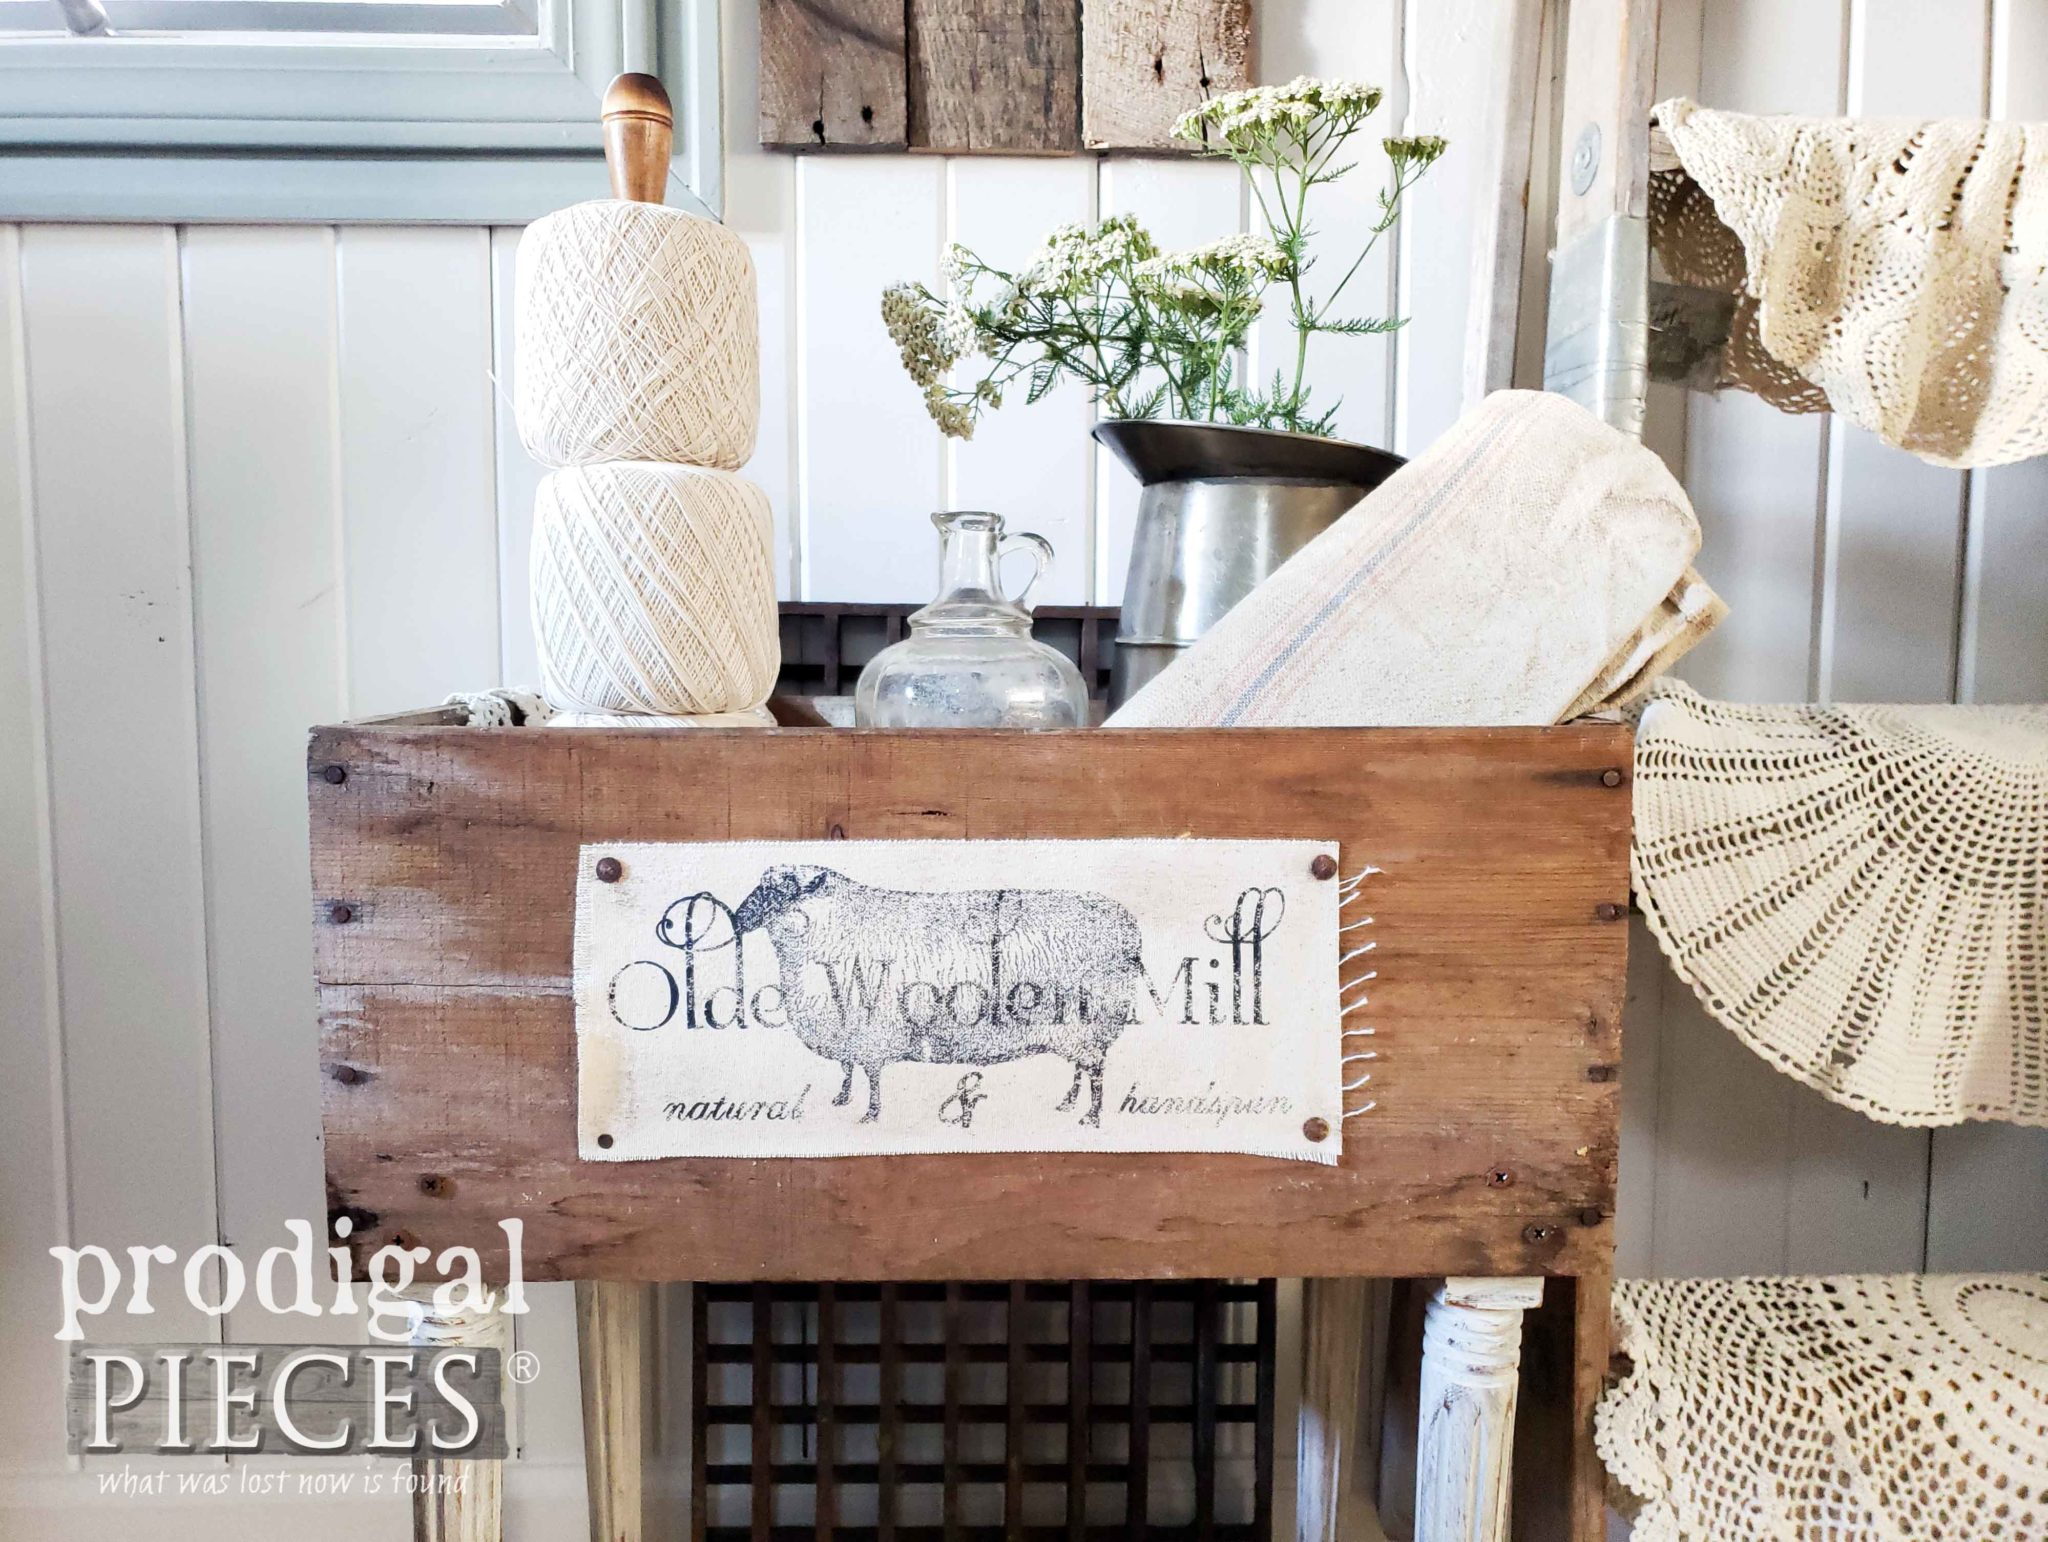 DIY Farmhouse Style Upcycled Crate Table Handmade by Larissa of Prodigal Pieces | prodigalpieces.com #prodigalpieces #handmade #home #furniture #farmhouse #homedecor